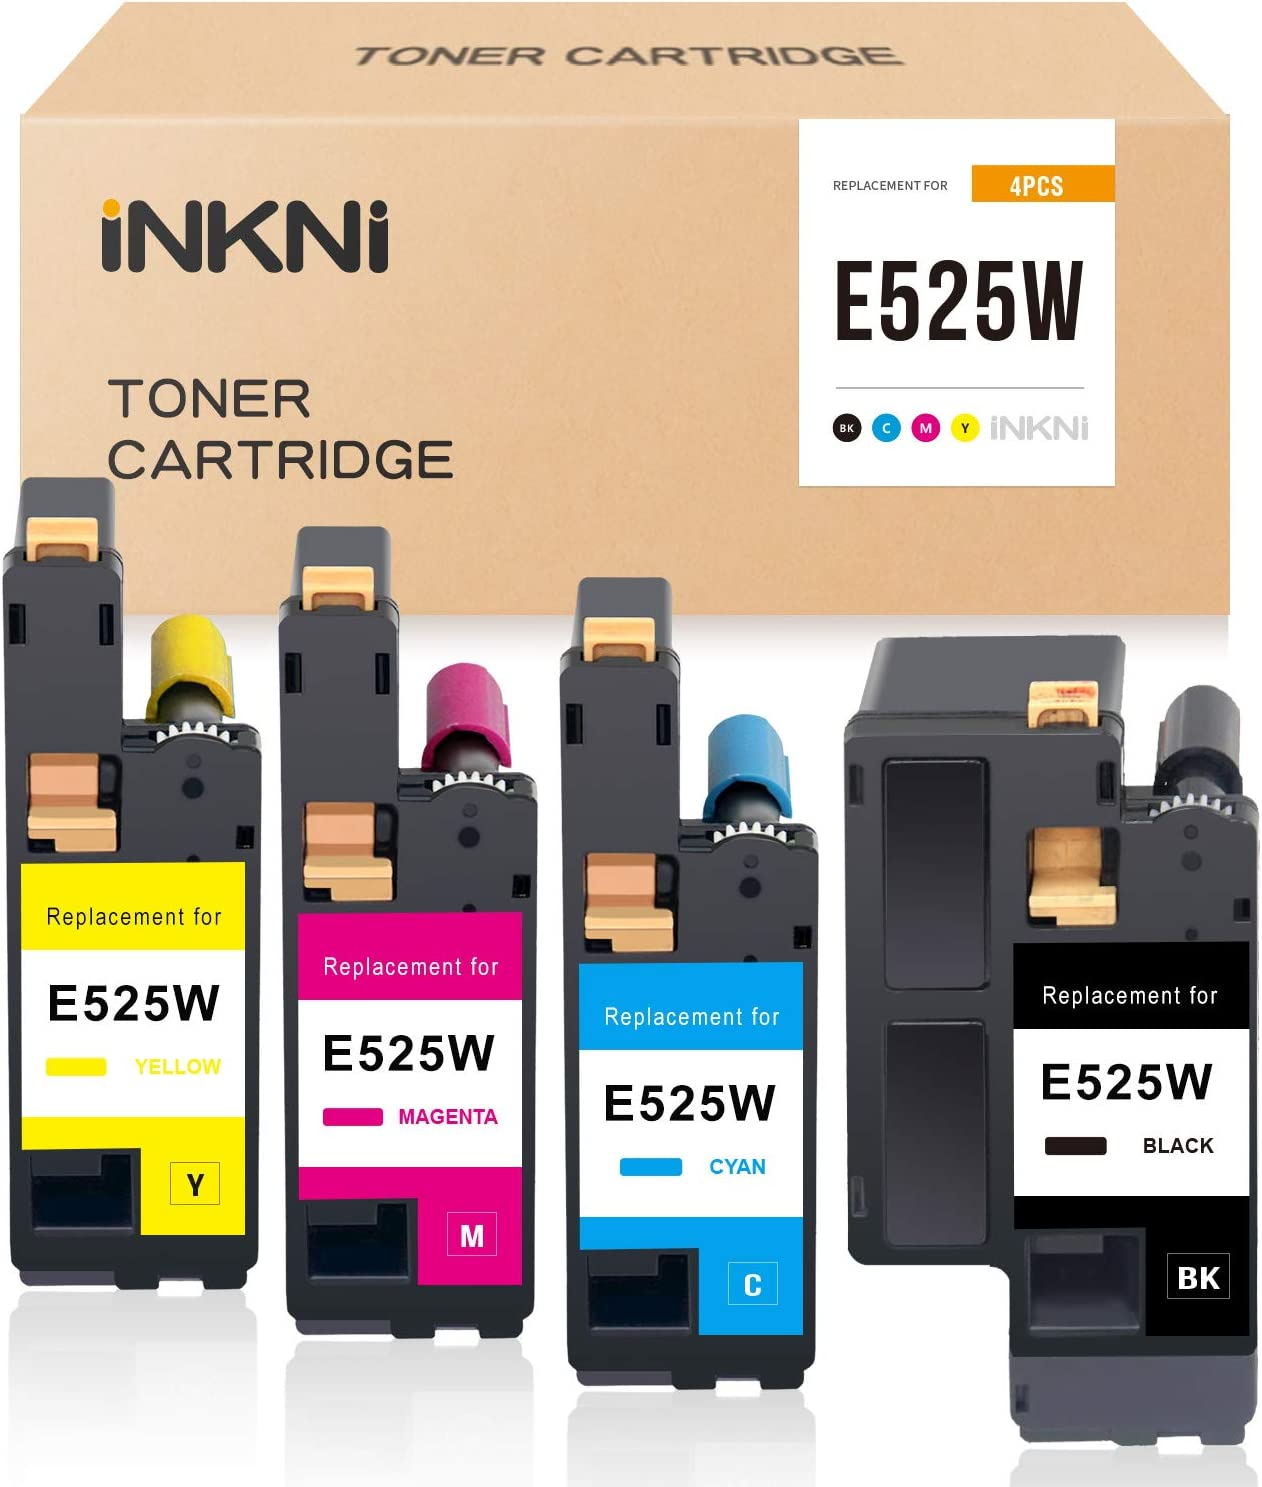 INKNI Compatible Toner Cartridge Replacement for Dell E525W E525 525w for E525dw Wireless Color Printer for 593-BBJX 593-BBJU 593-BBJV 593-BBJW (Black Cyan Magenta Yellow, 4 Pack)